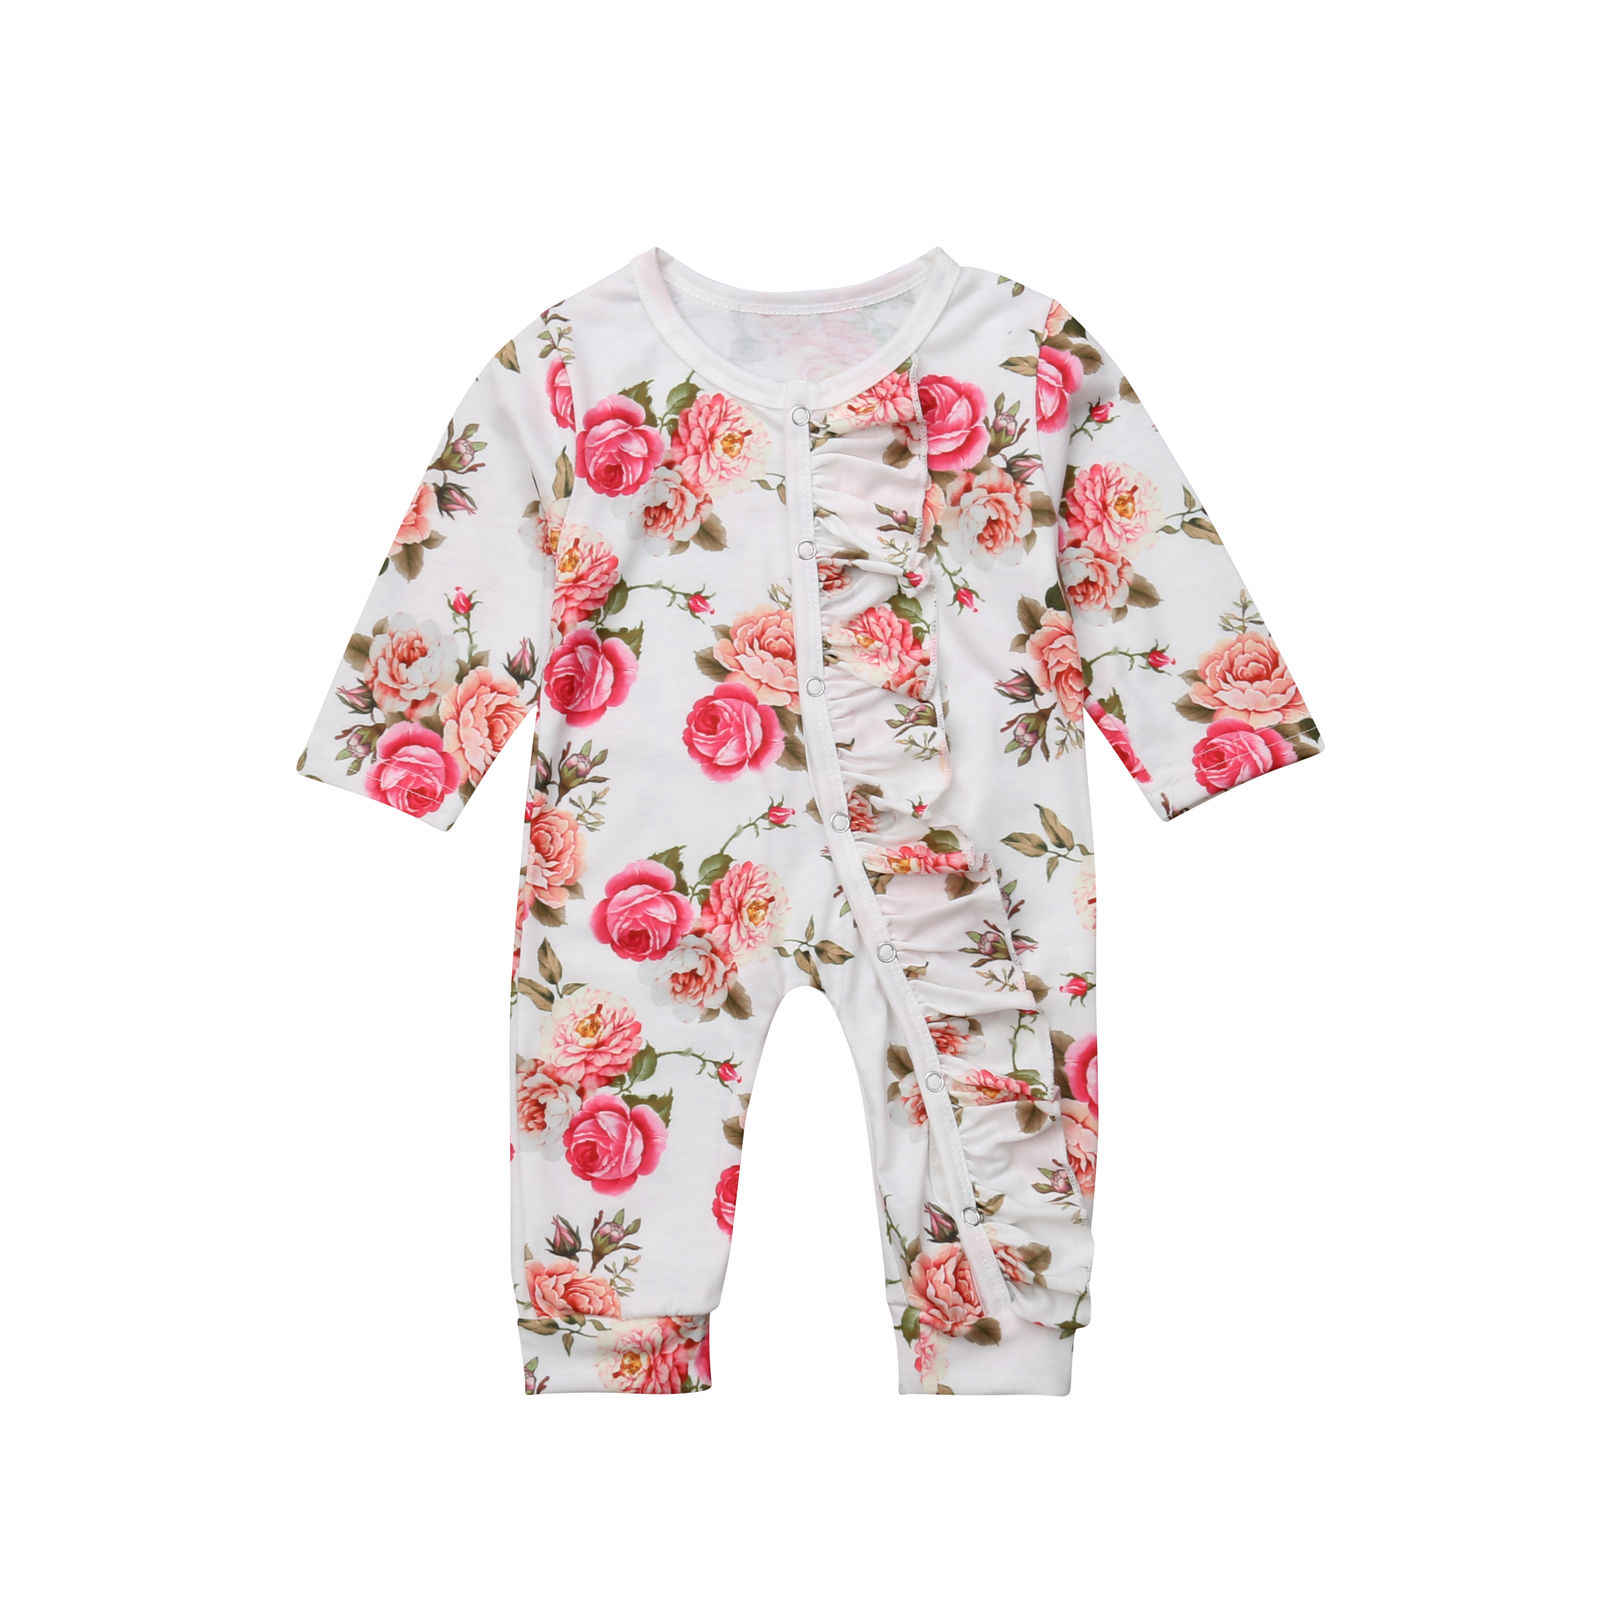 94807e09db9 ... Newborn Baby Girl Floral Romper Fashion New Long Sleeve Button Party  Jumpsuit Holiday Girls Casual Cotton ...